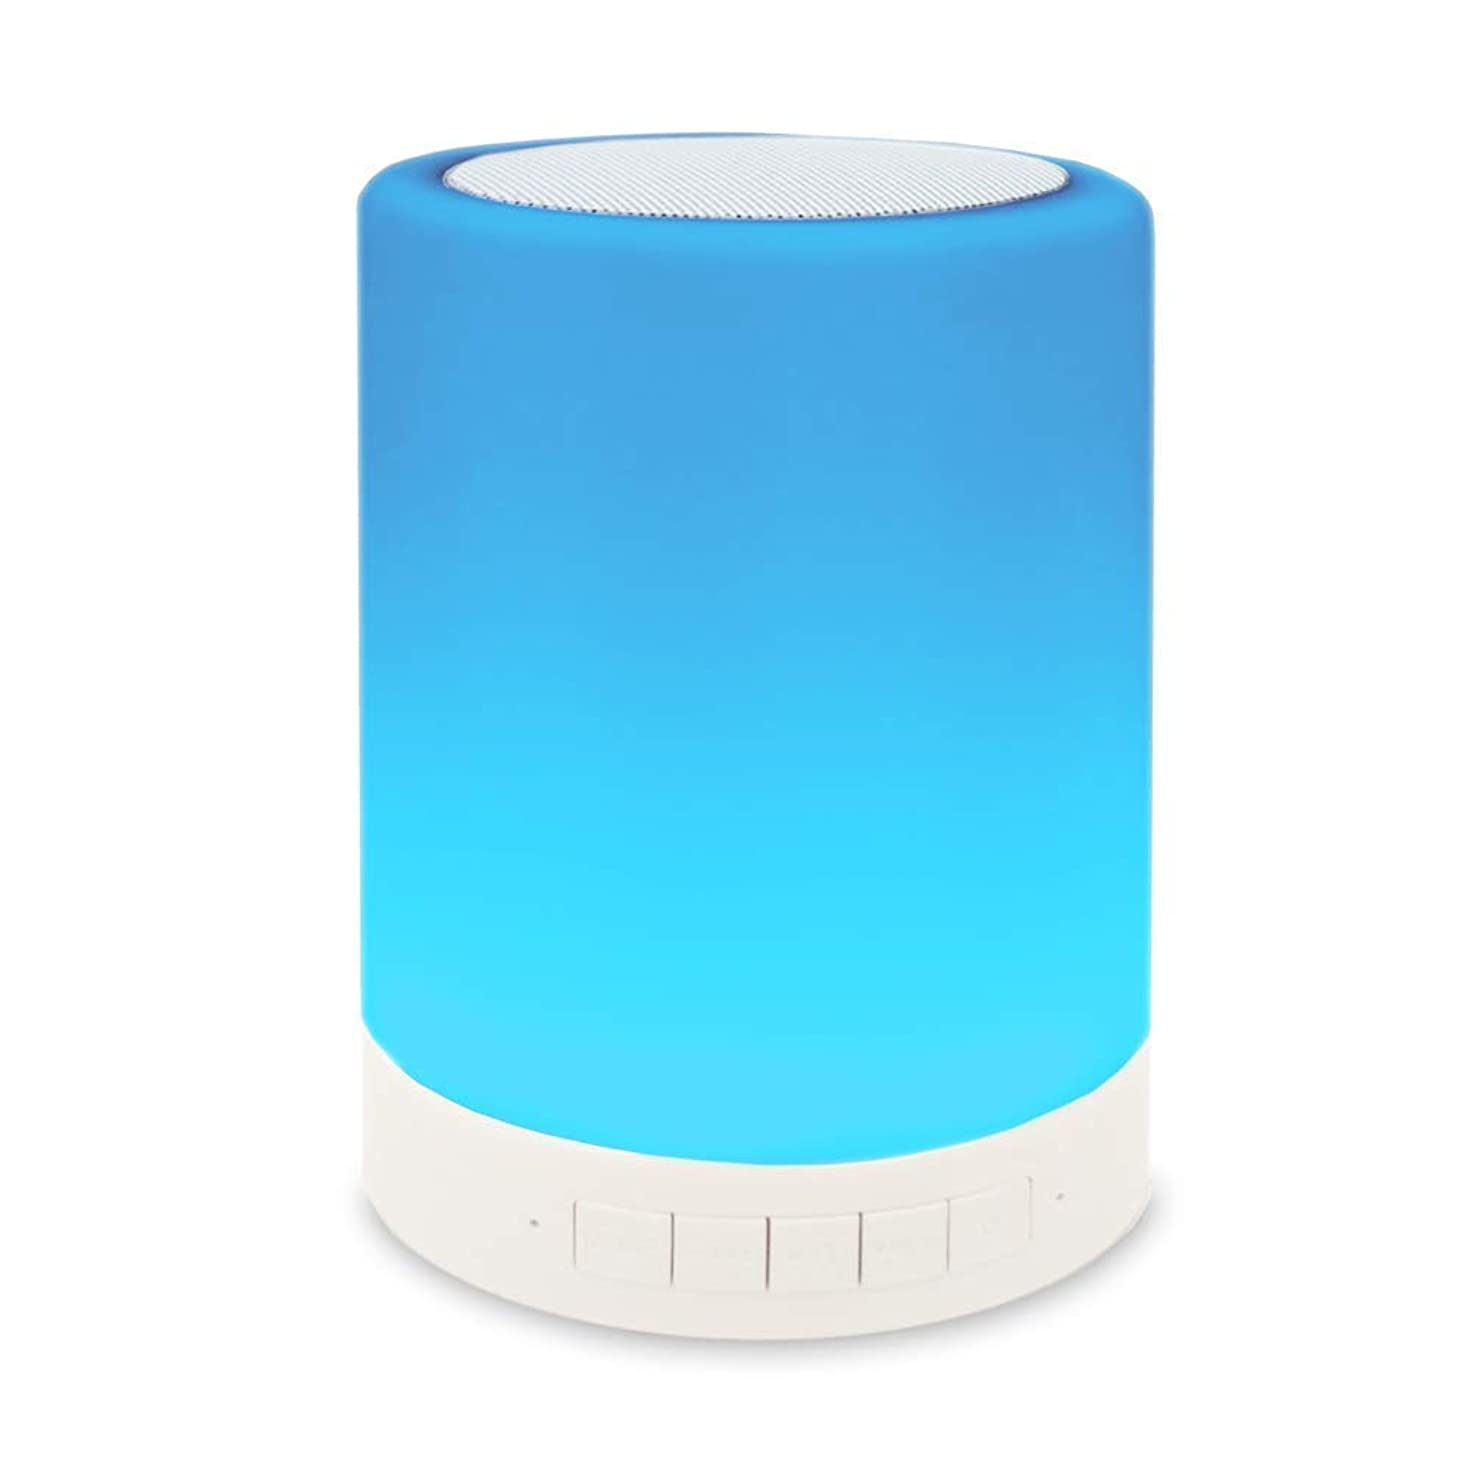 Night Light Bluetooth Speakers, Touch Control Bedside Lamp Dimmable Color Outdoor Table Lamp with LED Mood, Best Gift for Men Women Teens Kids Children Sleeping Aid Bedroom